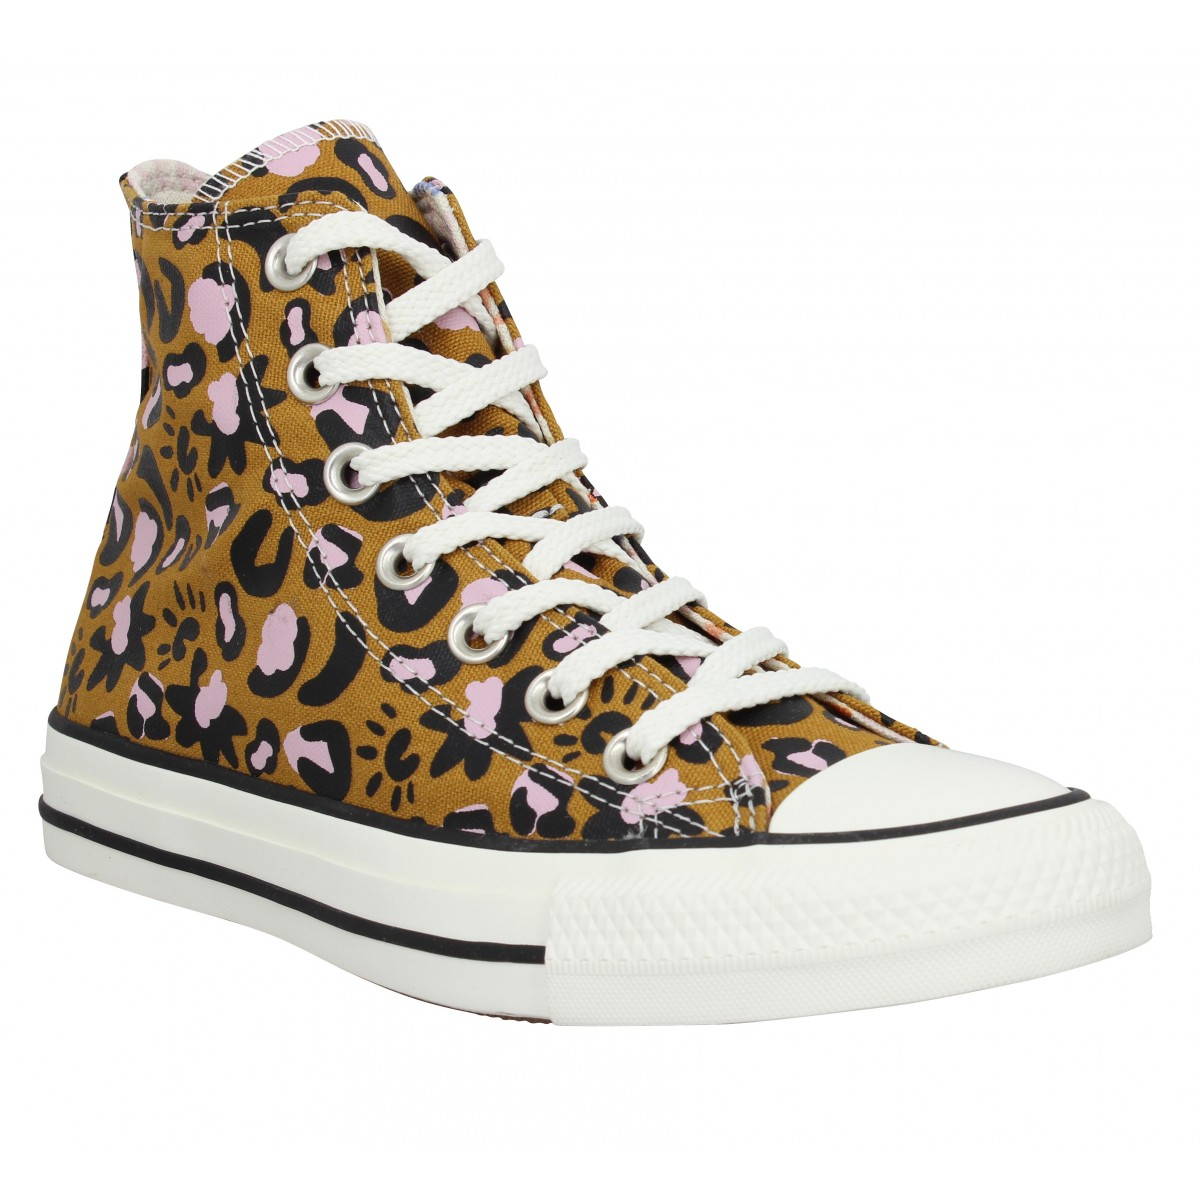 Baskets CONVERSE Chuck Taylor All Star Hi toile Femme Wheat Pink